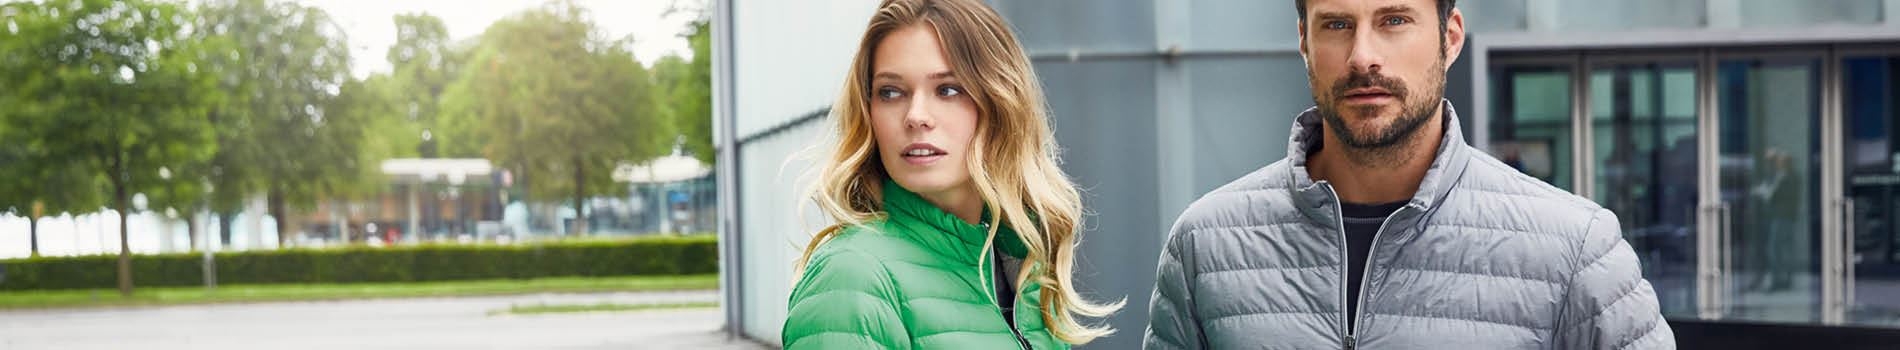 Winter jackets and work jackets - Wholesale - Cast Bolzonella